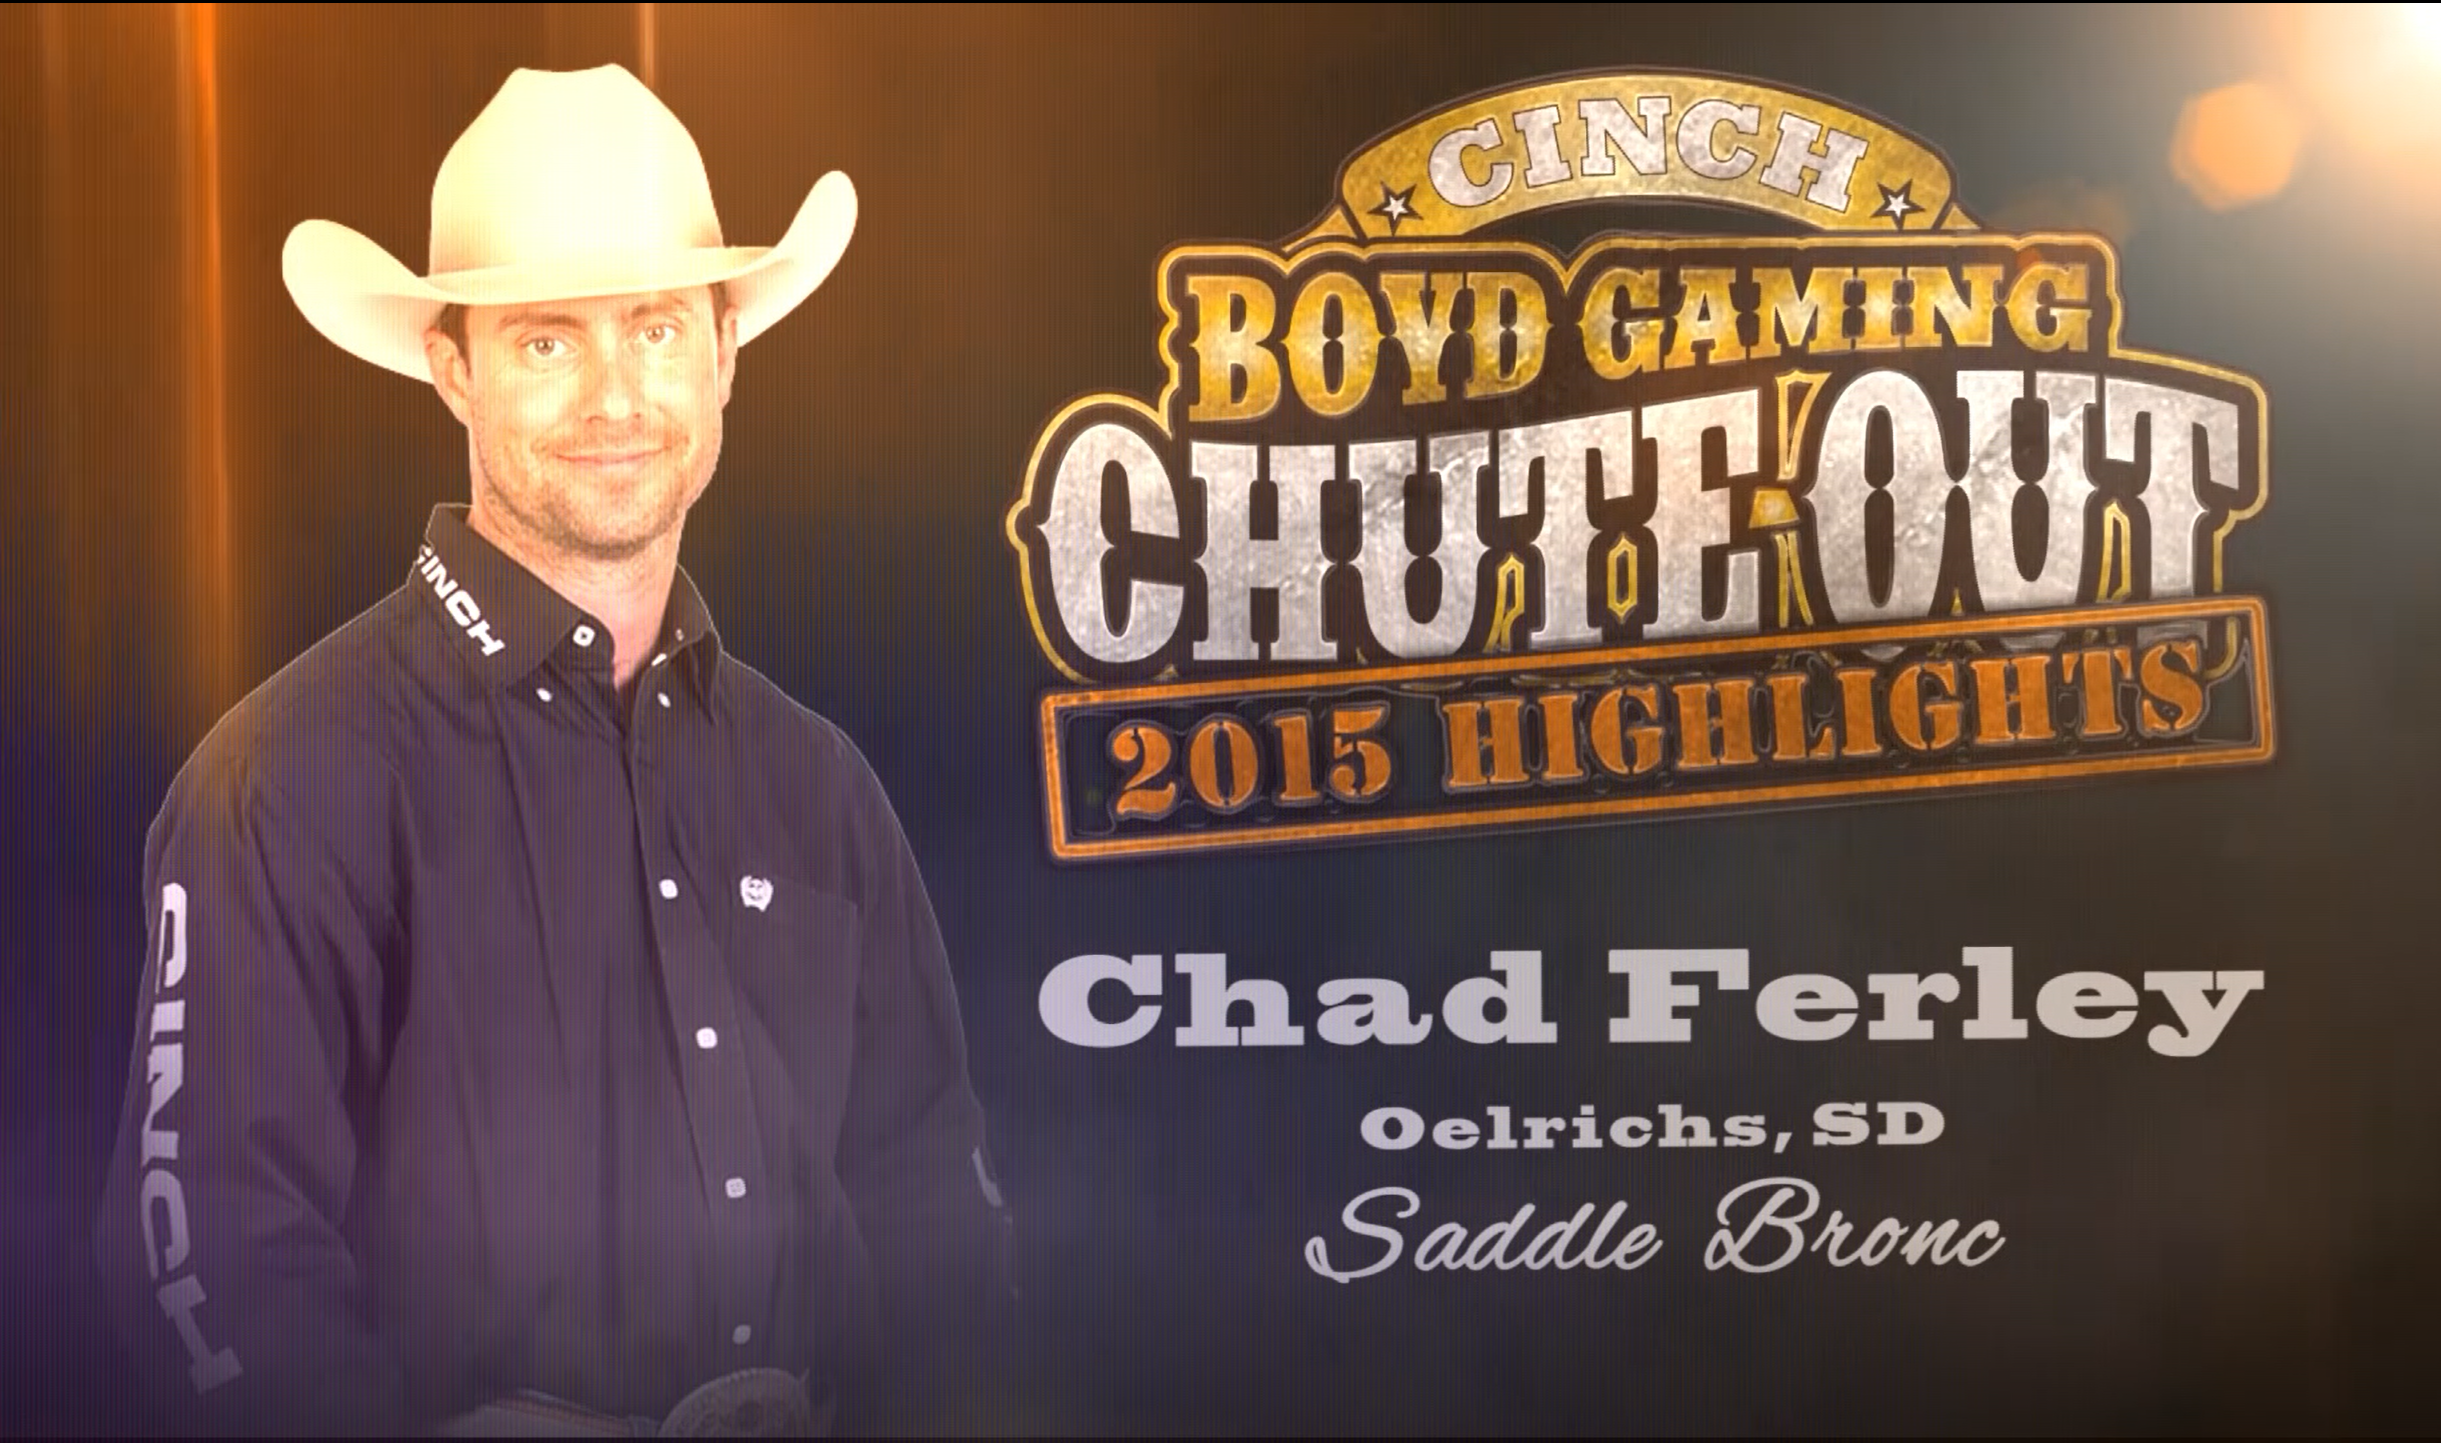 Motion Graphics & Video Editing piece created for a Rodeo.